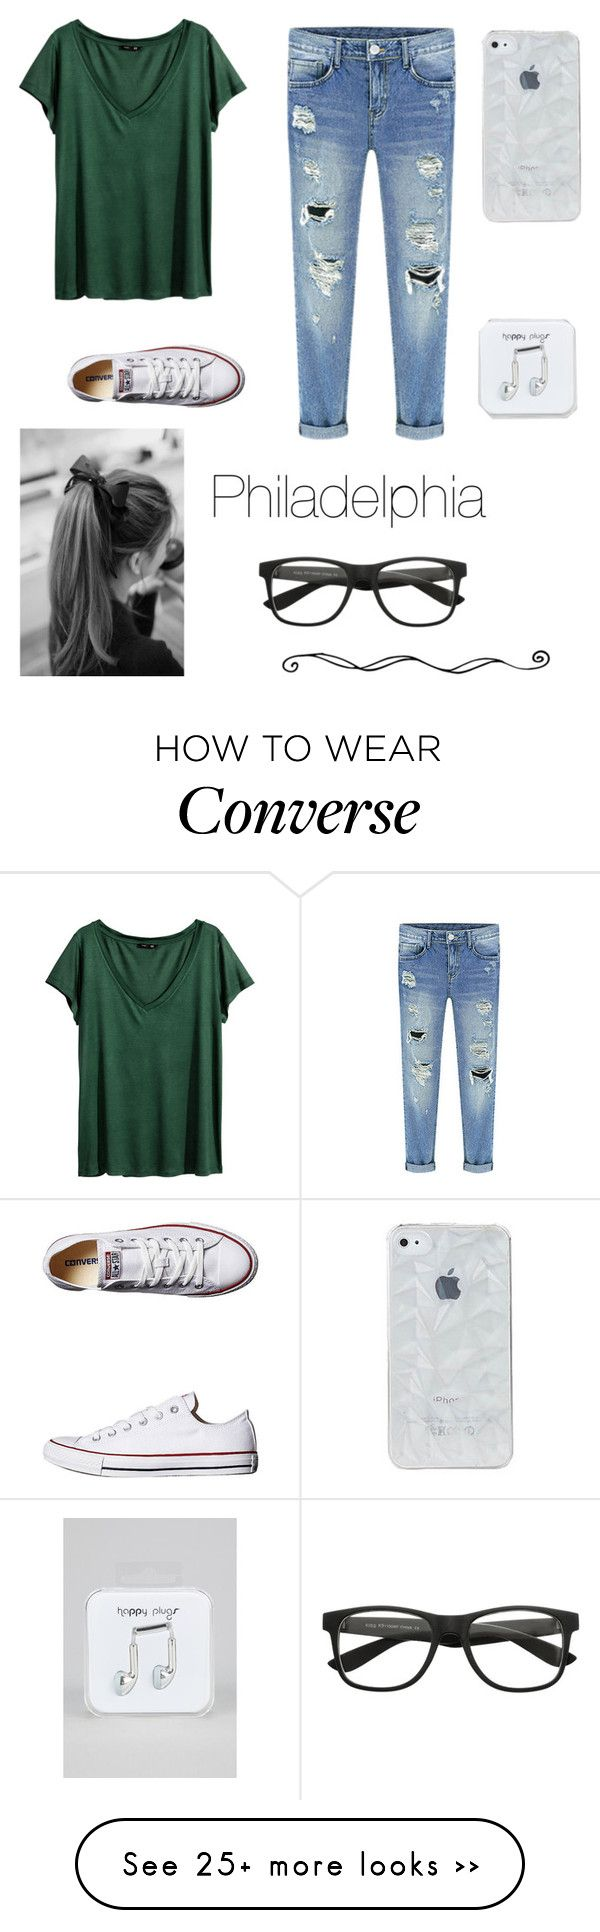 """Philadelphia"" by mariafe1231 on Polyvore featuring H&M, Converse, Happy Plugs, visitphilly and popeinphilly"